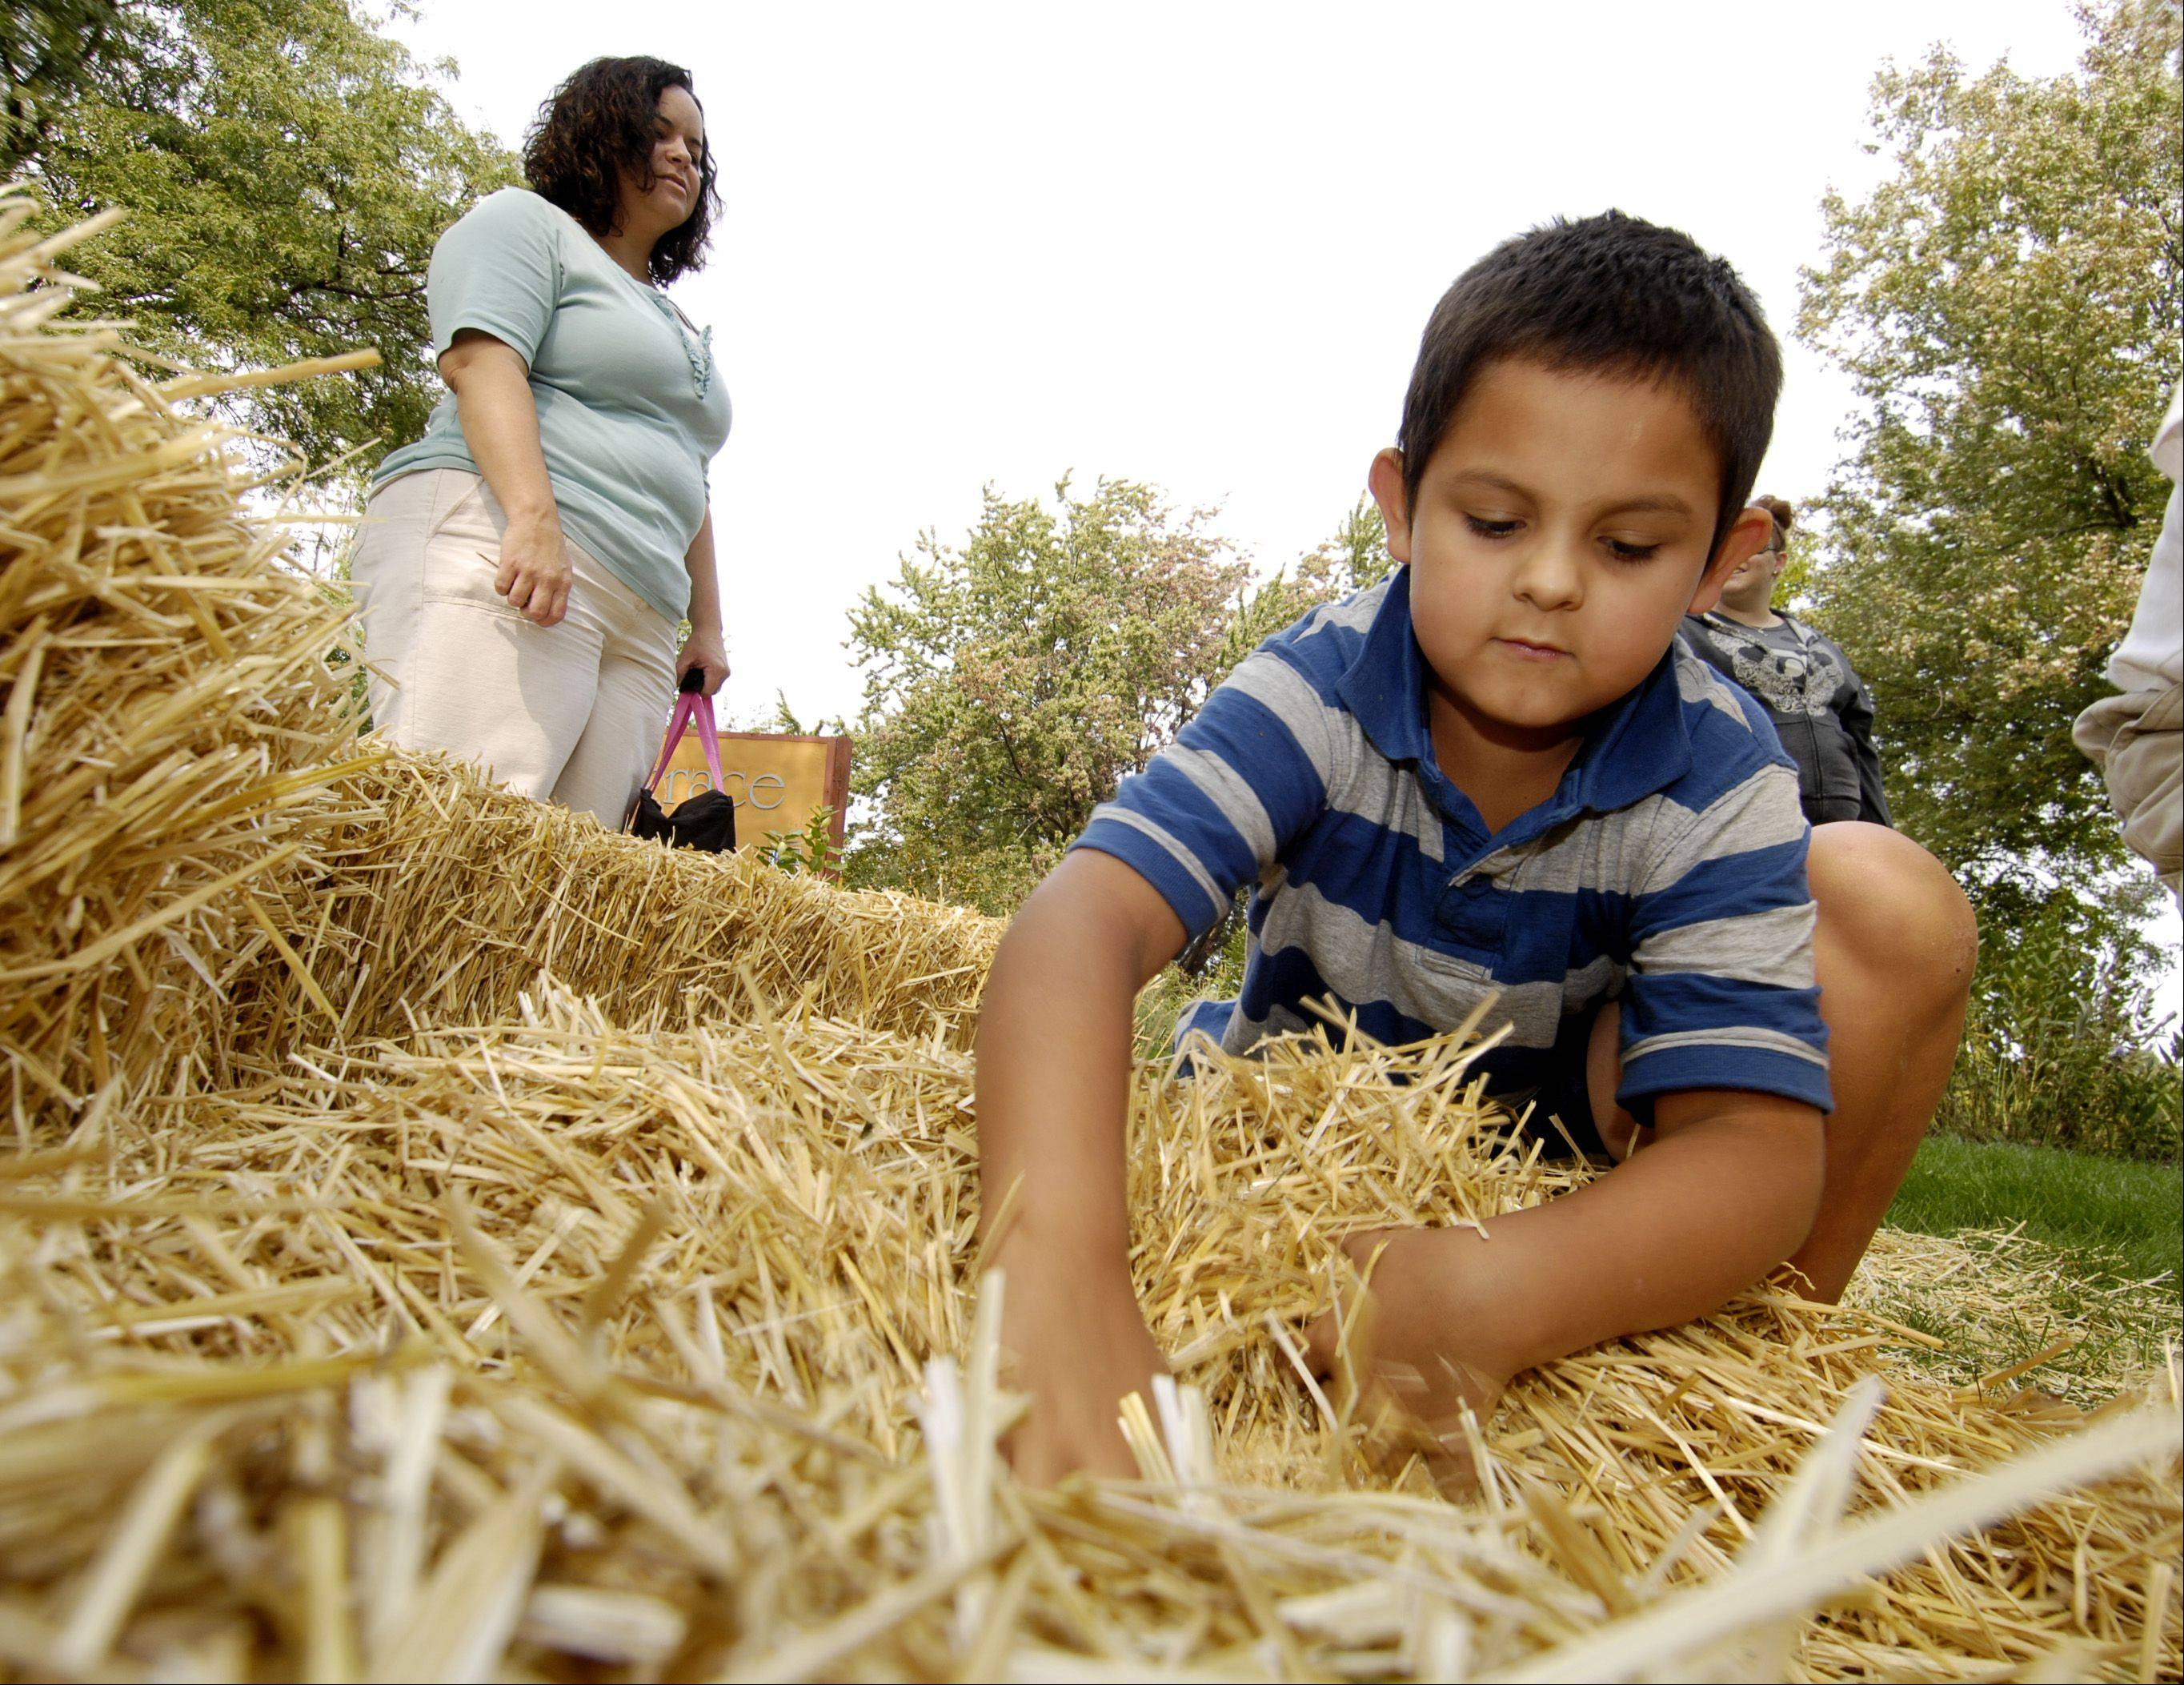 Max Paton, 7, digs for a Popsicle stick in the haystack to win some candy during the annual Prairie Days Sunday at Terrace View Park in Lombard.